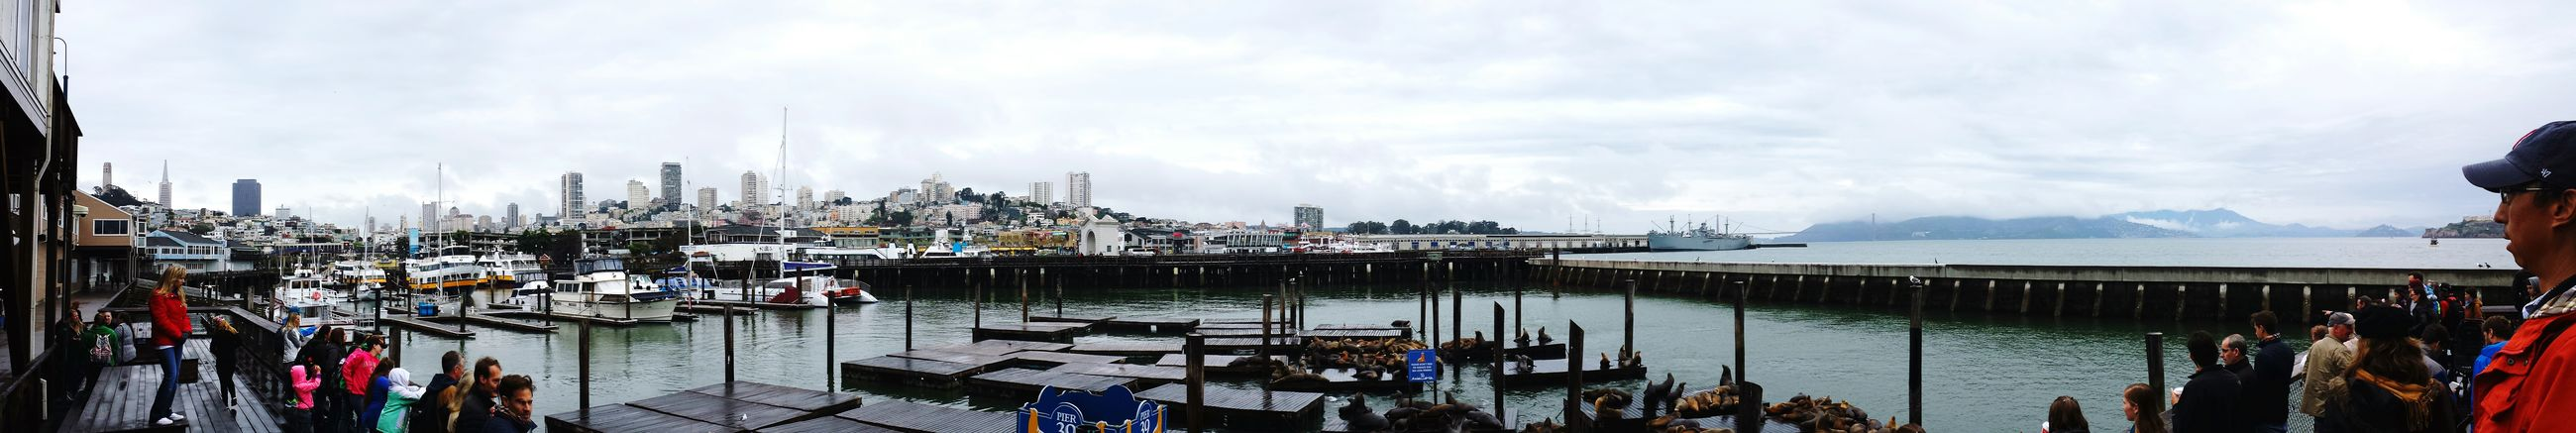 Life Of A Flight Attendant San Francisco Fisherman's Wharf Pier 39 Sea Lions Sea Lions In San Francisco Panoramic Photography Panoramic View The Minimals (less Edit Juxt Photography) Travel Photography Eye Em Around The World Eye Em Travel Fascination